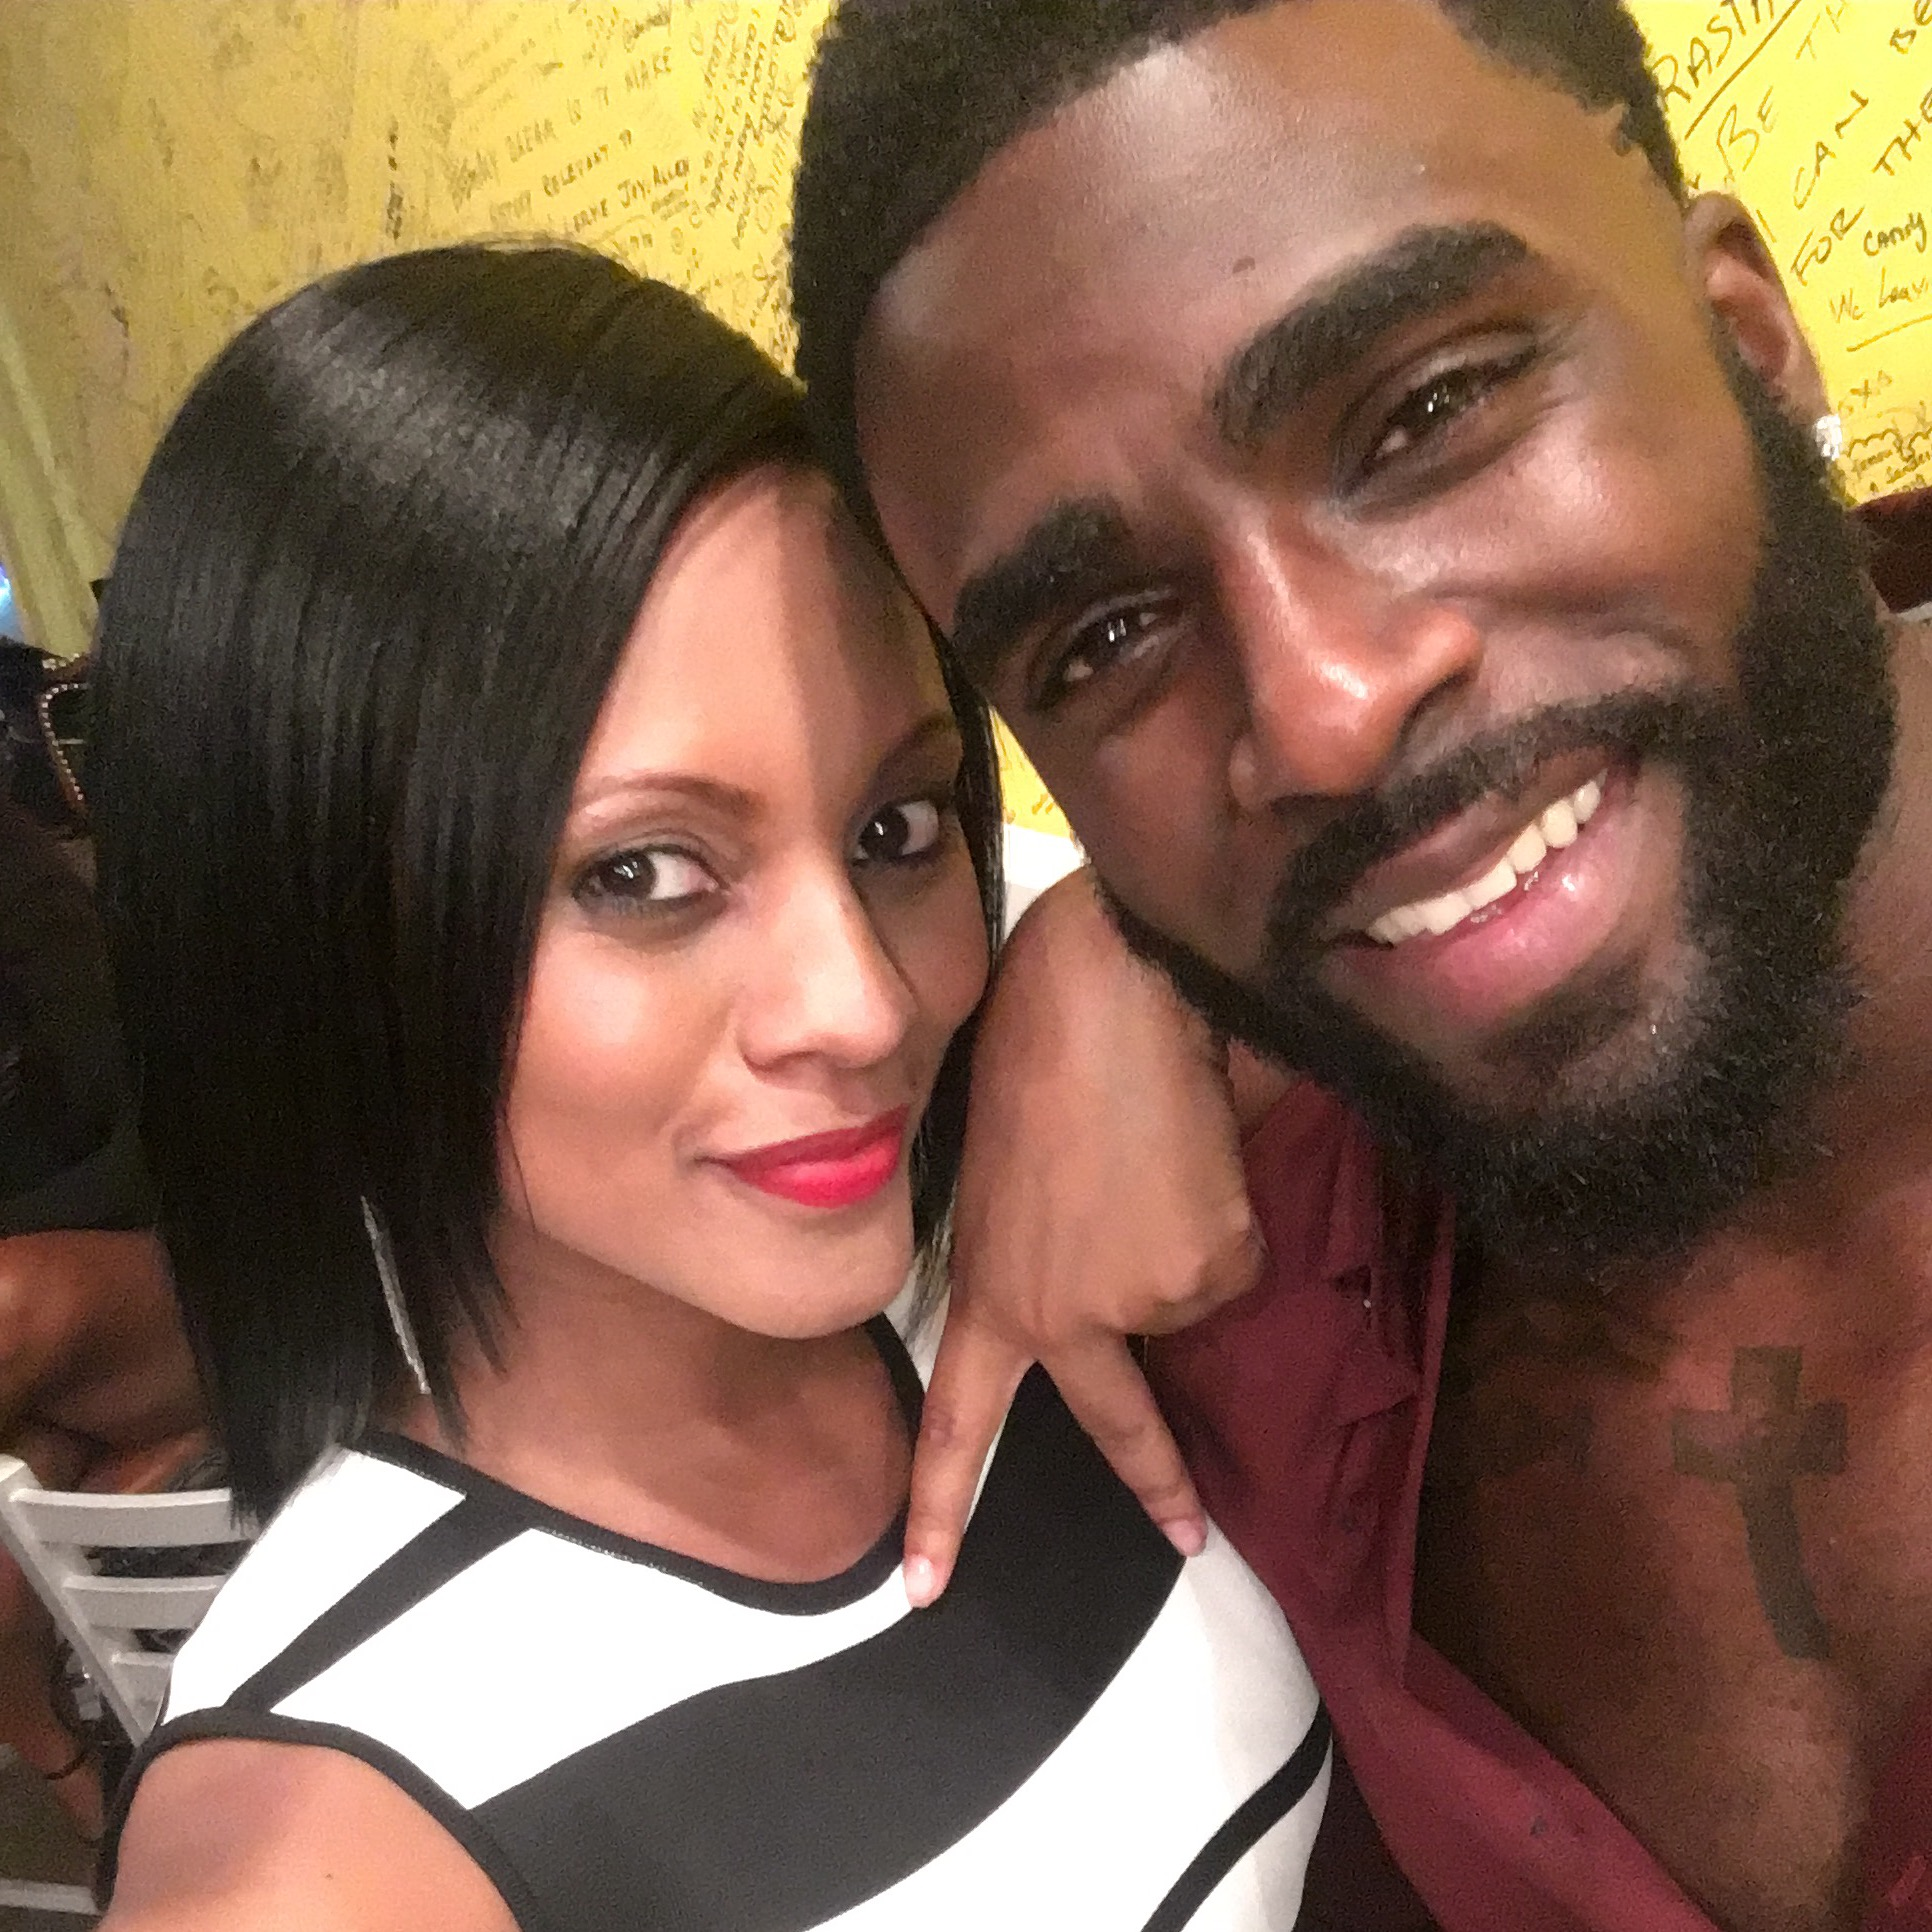 Host Maria Wills and model Travis Cure